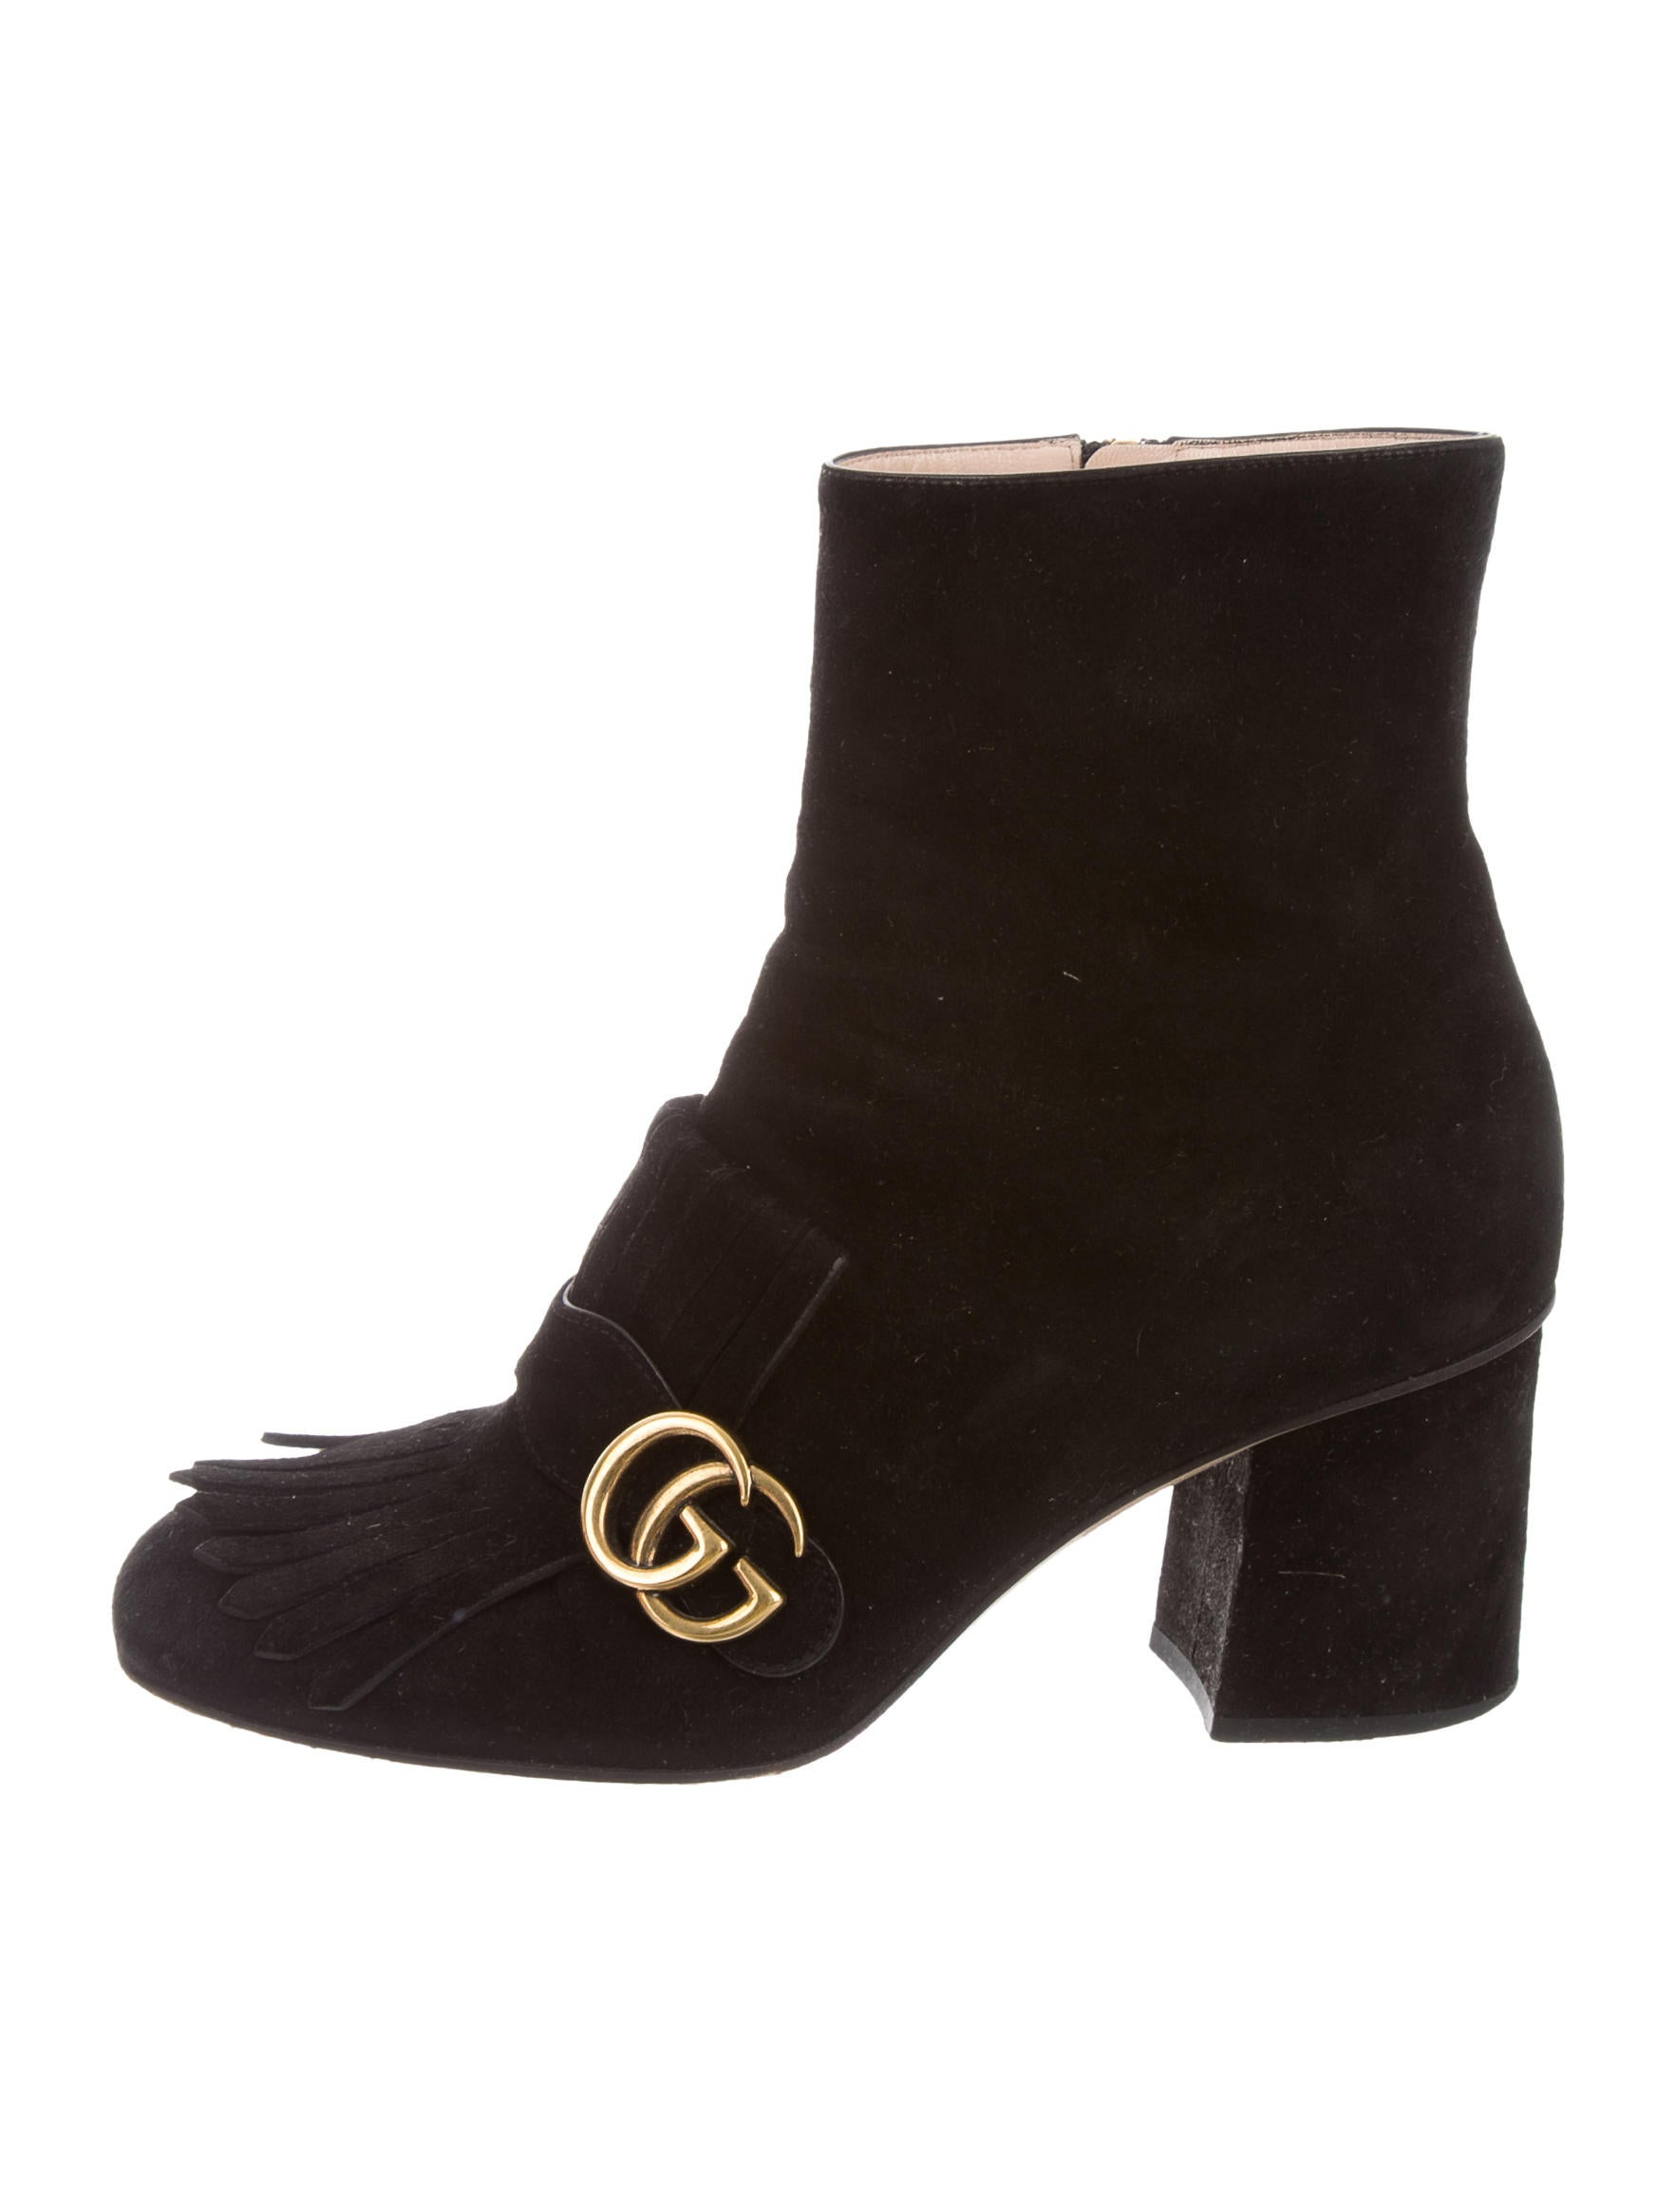 gucci marmont ankle boots shoes guc133421 the realreal